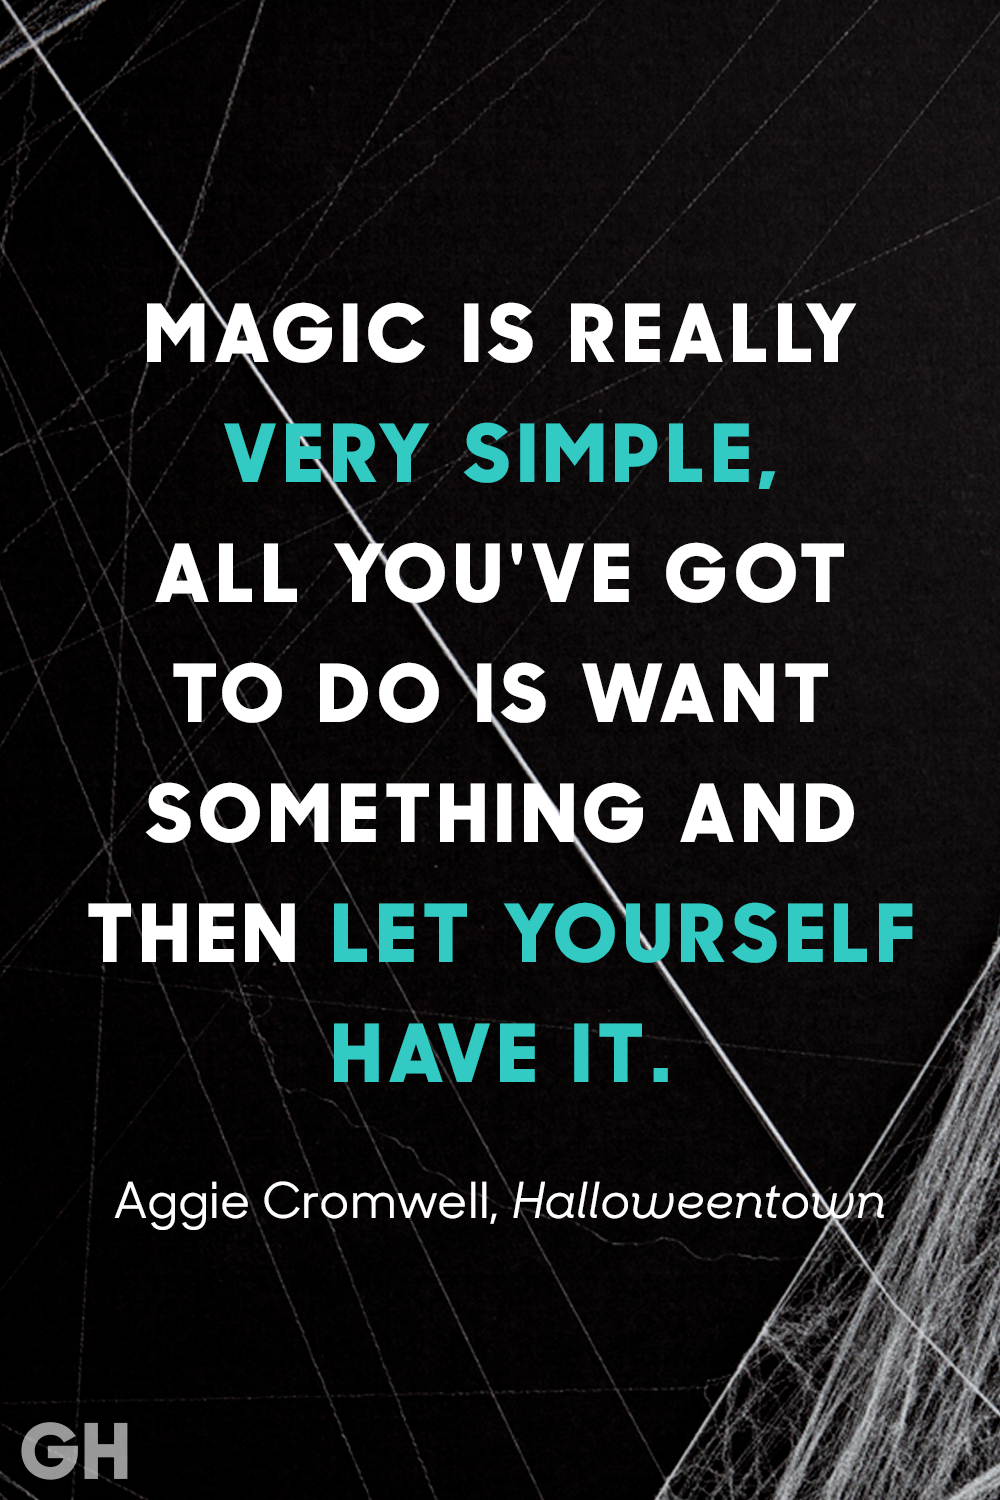 High Quality Aggie Cromwell, Halloweentown Halloween Quotes